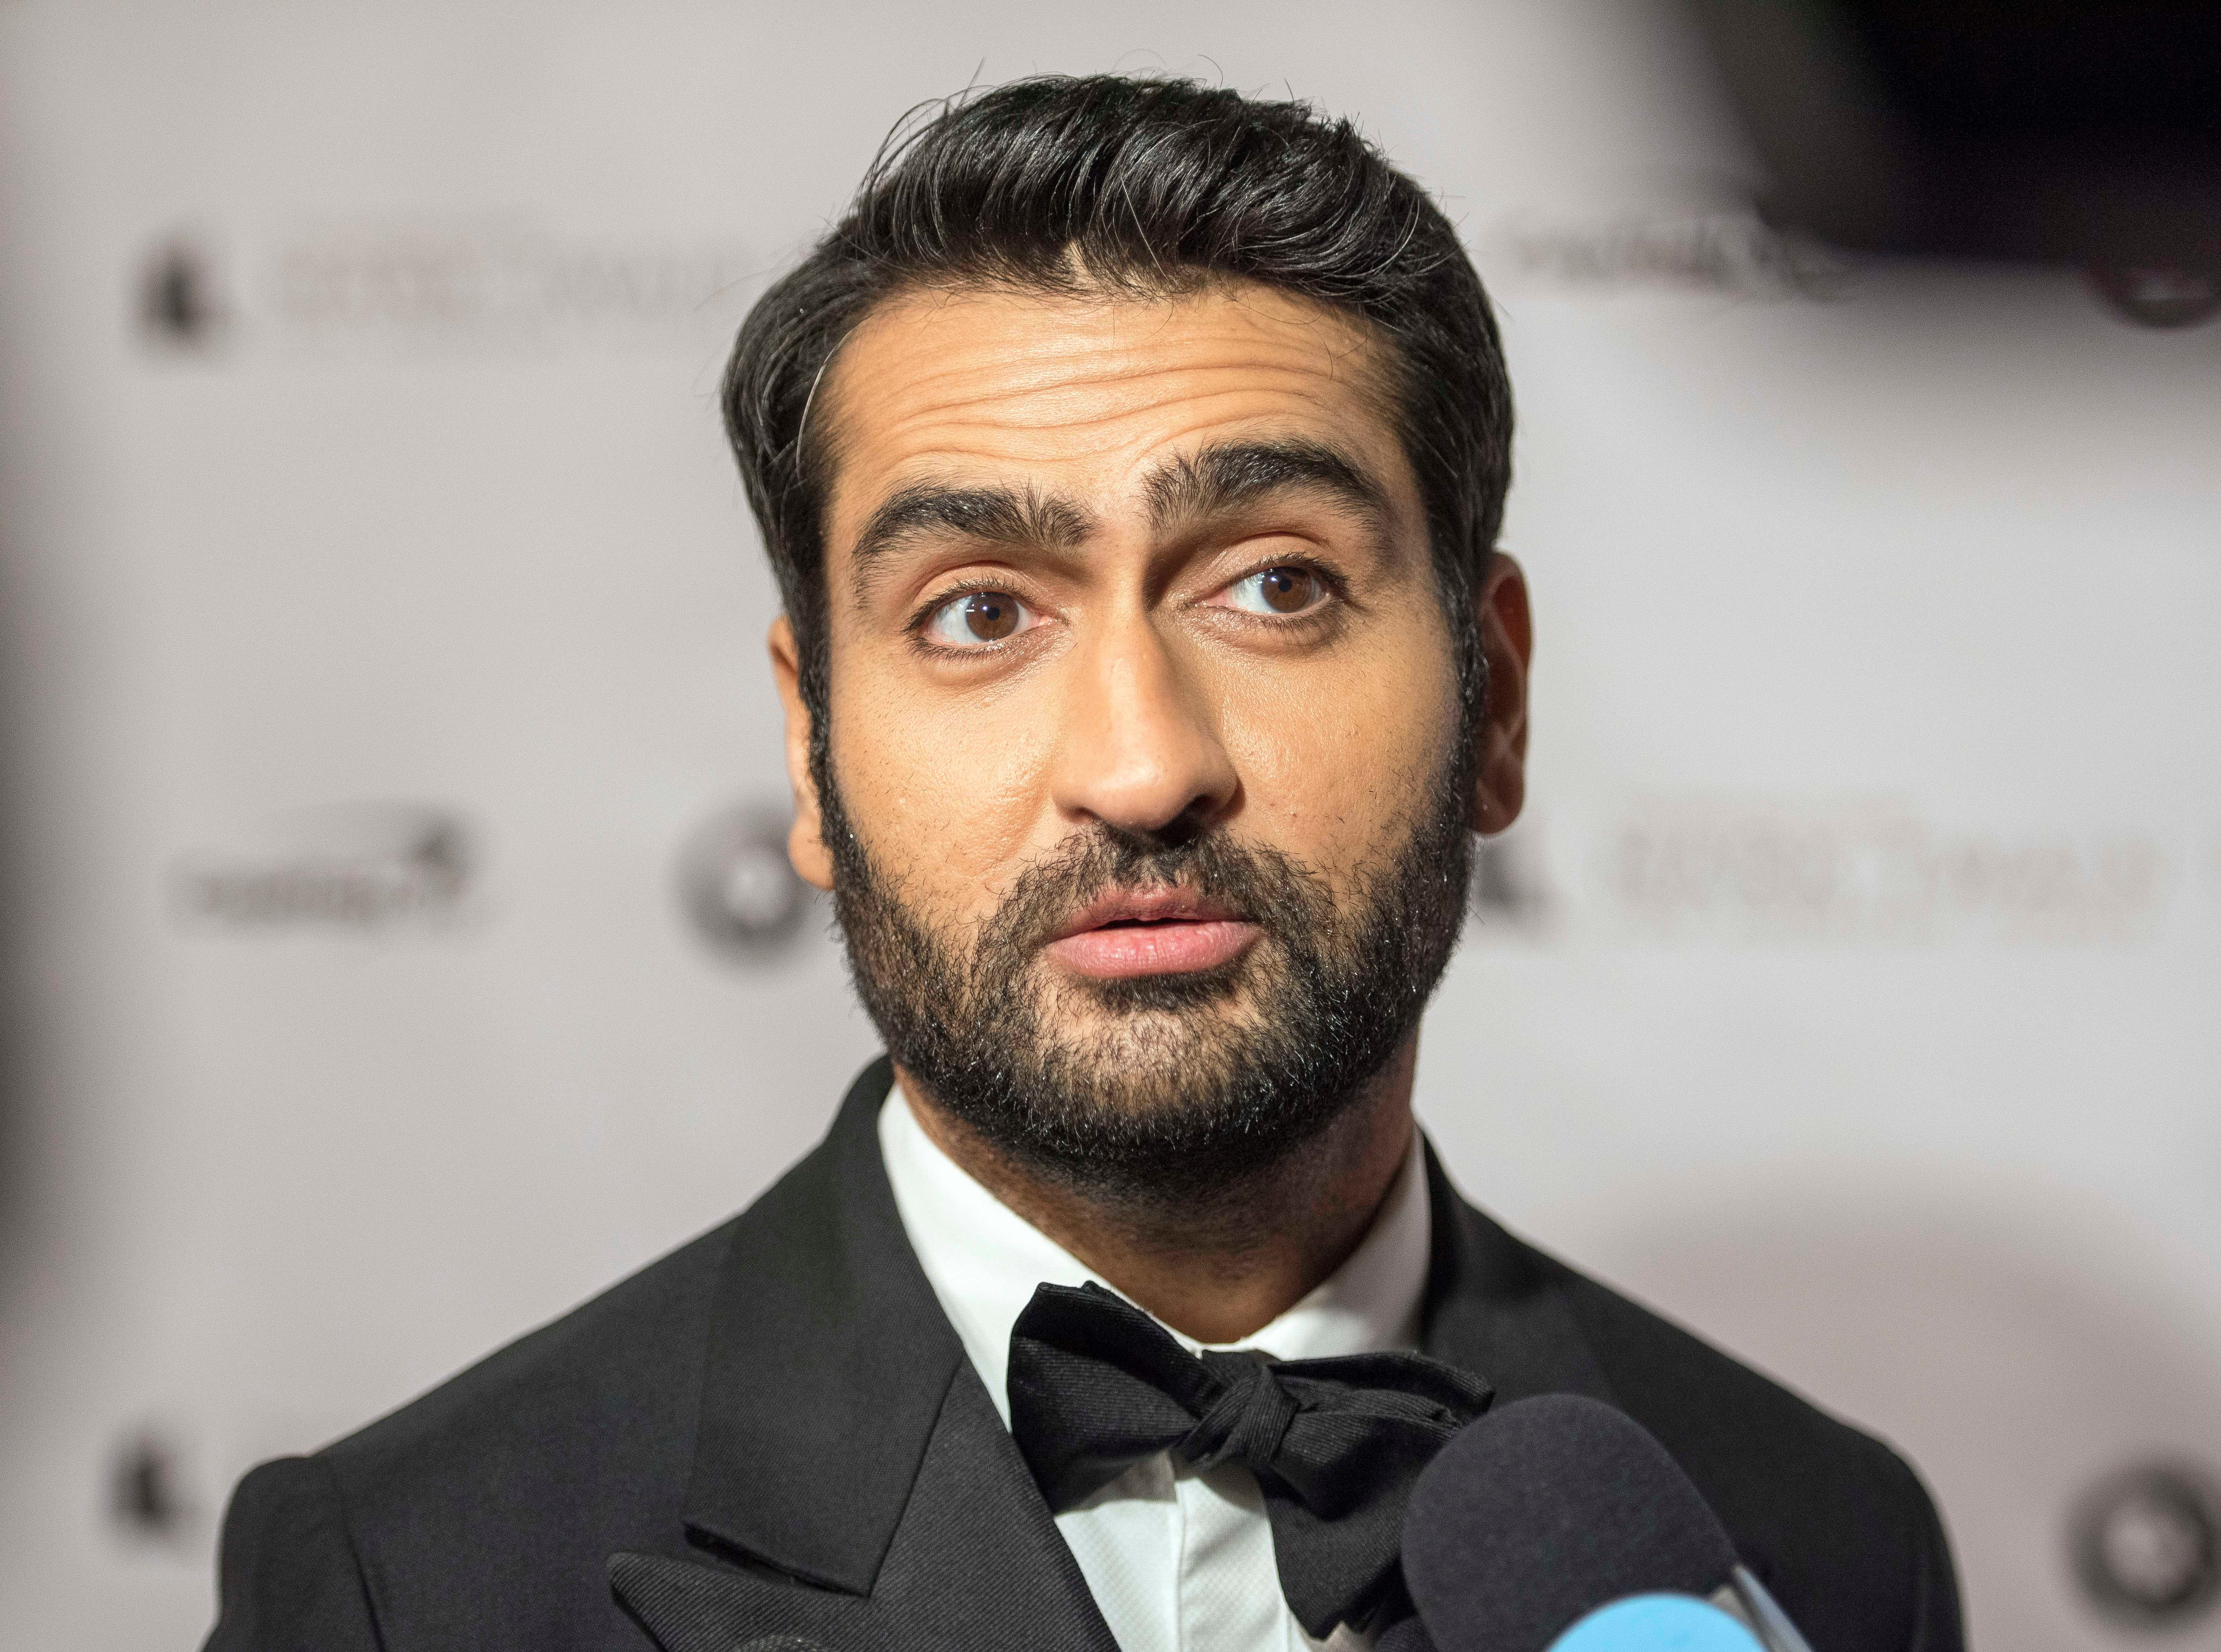 Oct 21, 2018; Washington, DC, USA; Kumail Nanjiani in attendance as Julia Louis-Dreyfus (not pictured) walked away with the Mark Twain Prize and a pretty good roasting by her fellow celebrities at the Kennedy Center. Photo by  Matthew Sobocinski-USA TODAY Staff   ORIG FILE ID:  20181022_ajw_usa_007.jpg